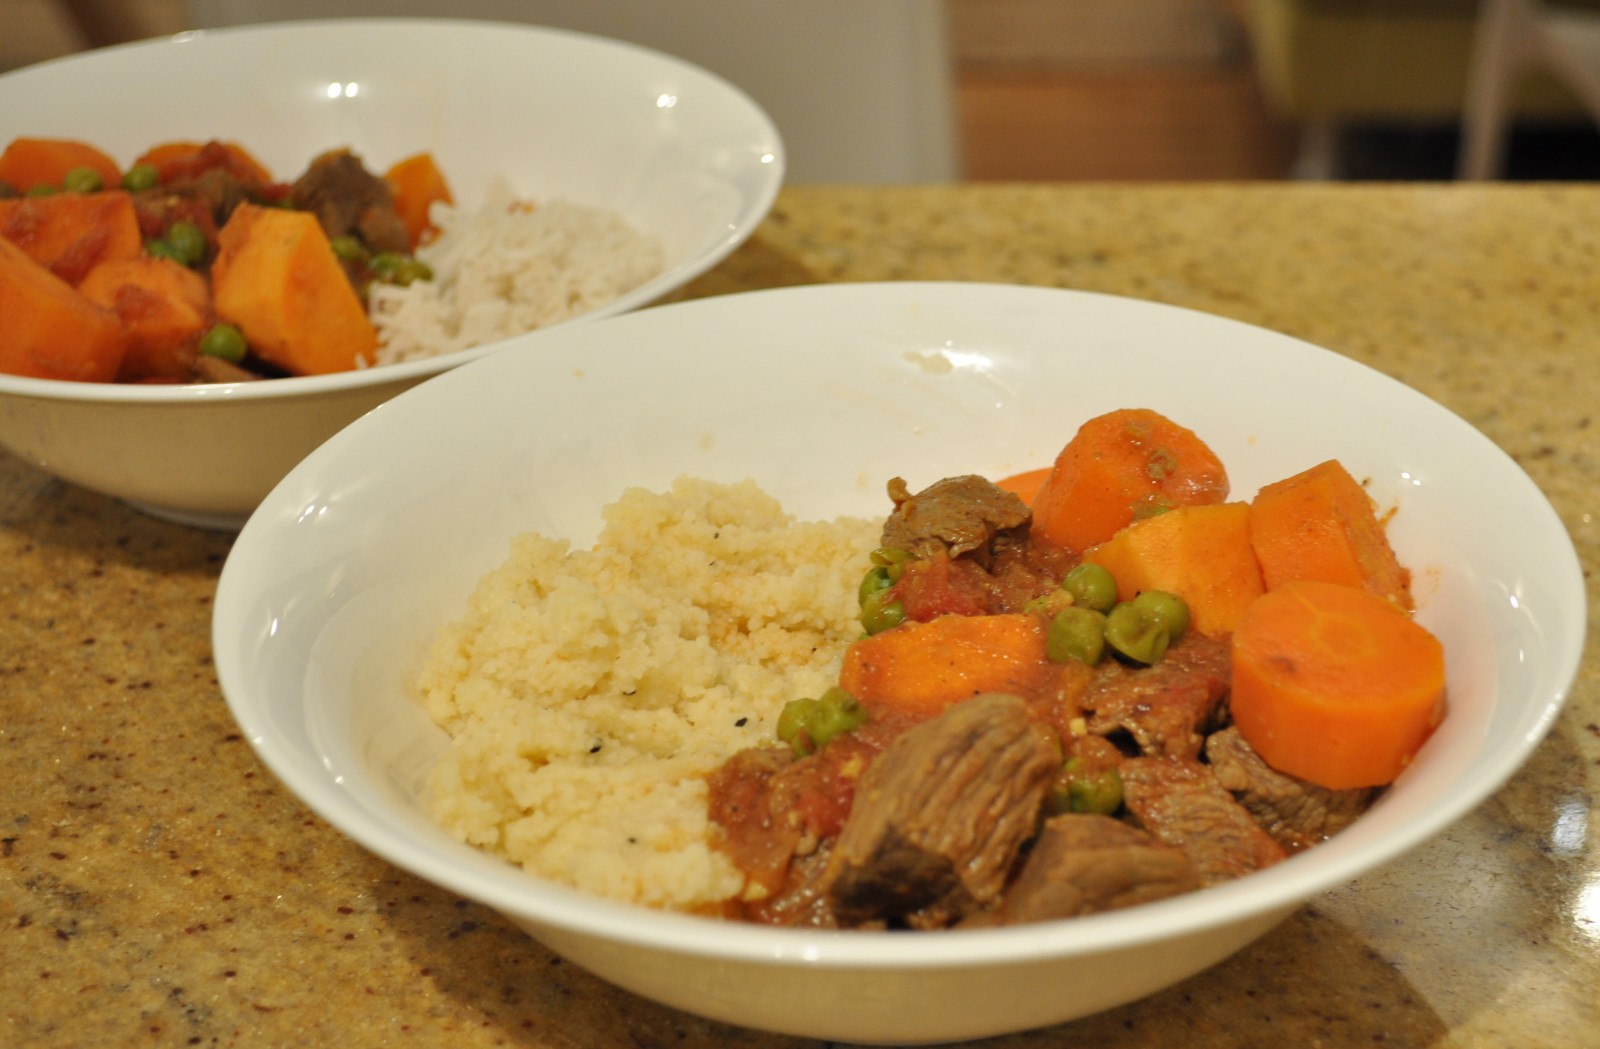 Lamb and sweet potato tagine